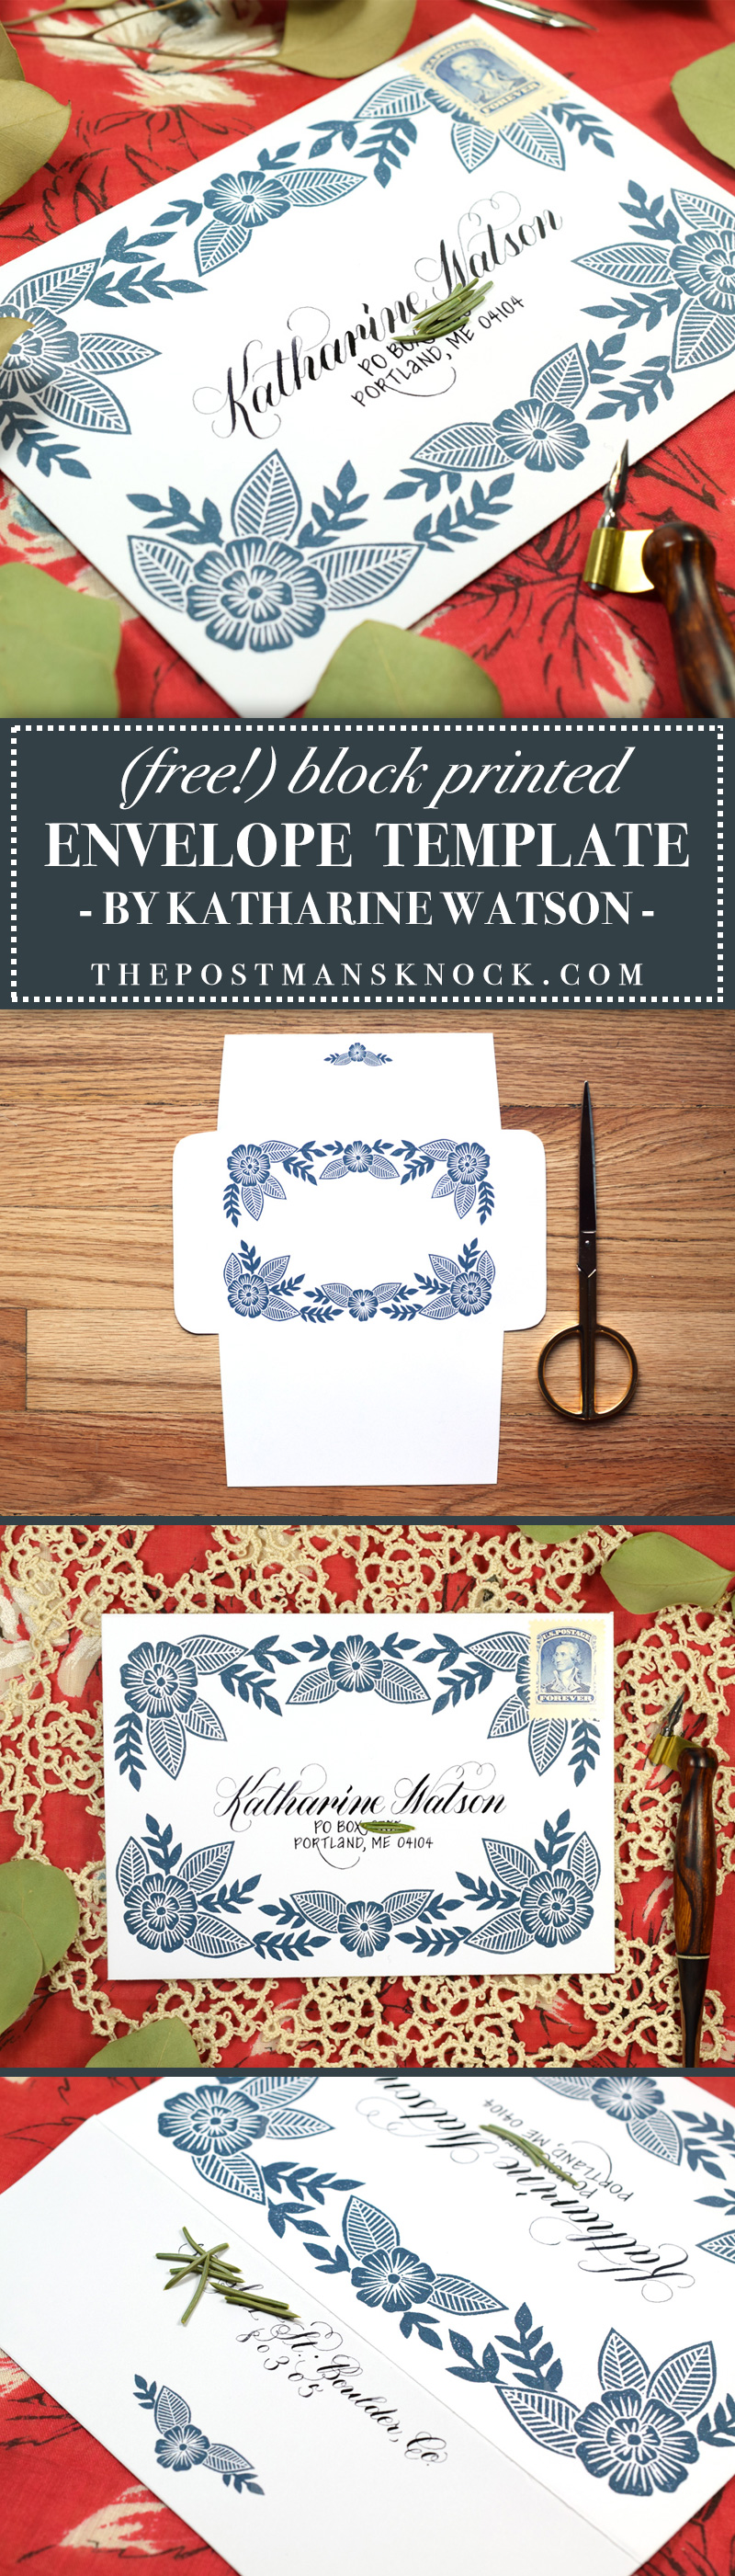 (Free!) Block Printed Envelope Template | The Postman's Knock